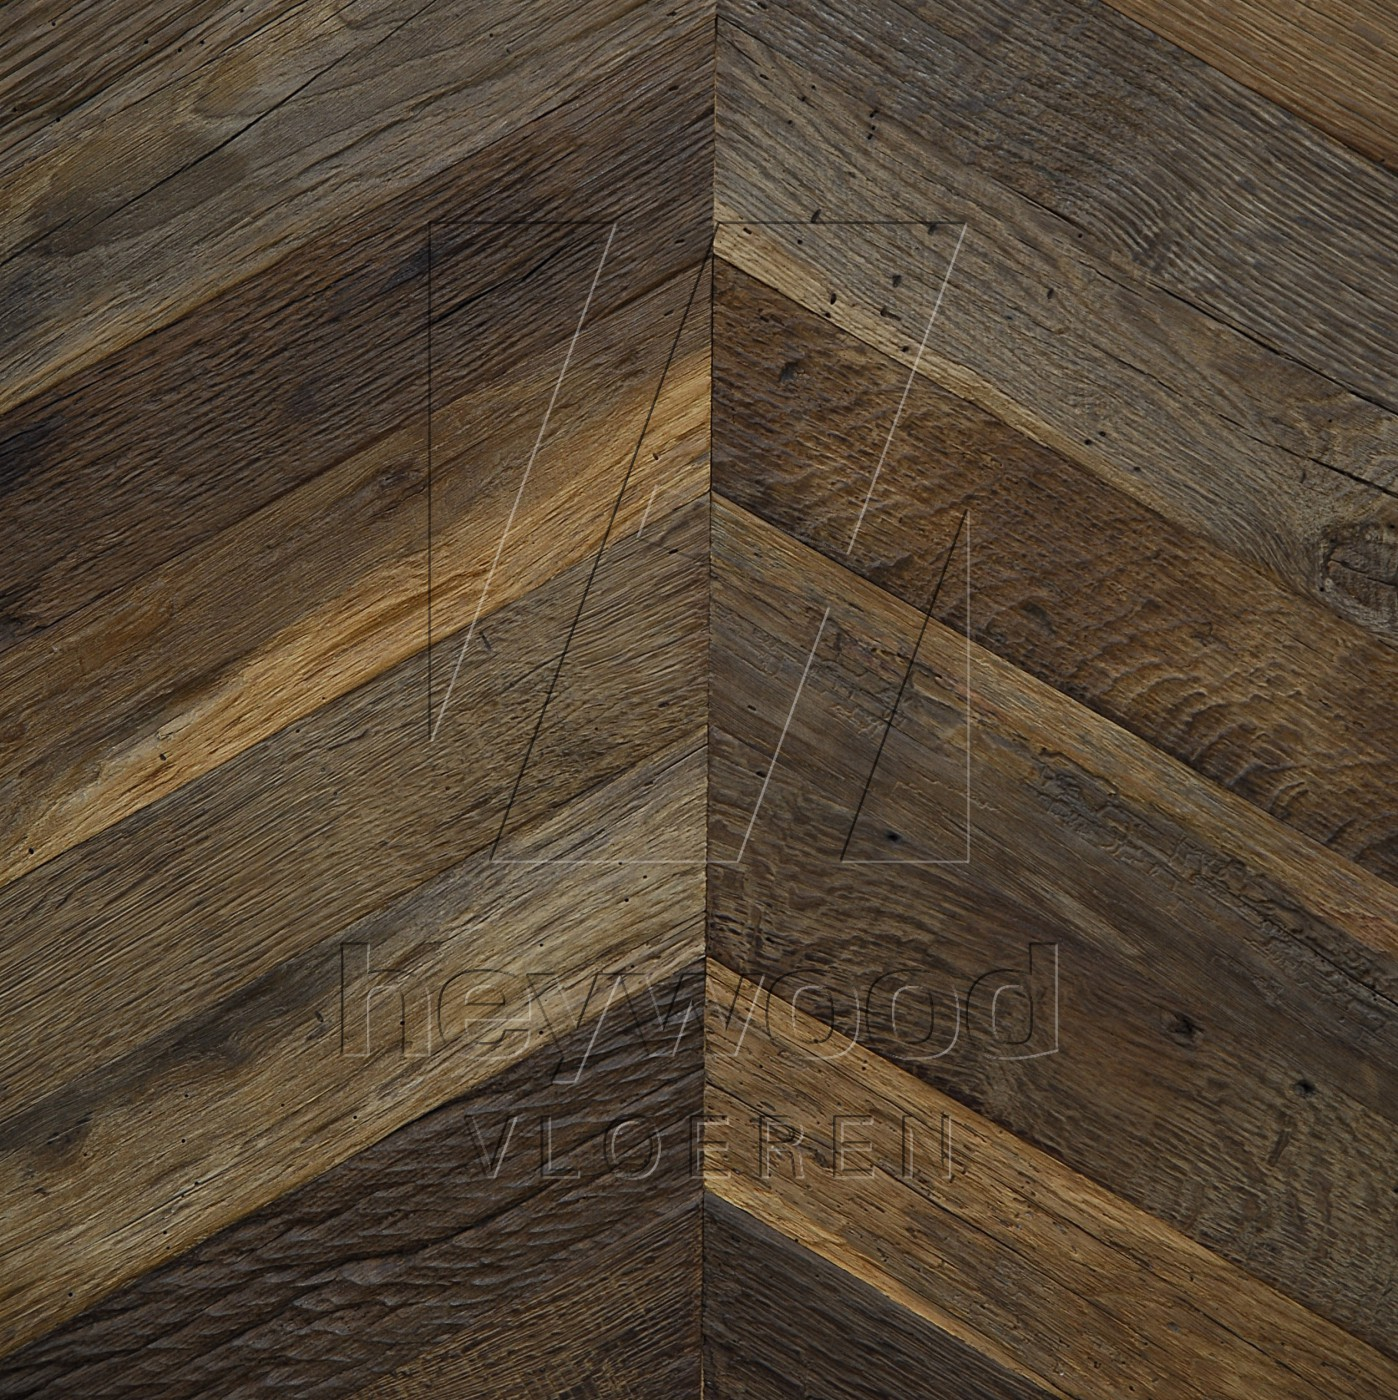 Cotswolds Chevron (200 years old Reclaimed Oak, Outside) in Pattern & Panels (Outsides / Insides) of Old Reclaimed Wood